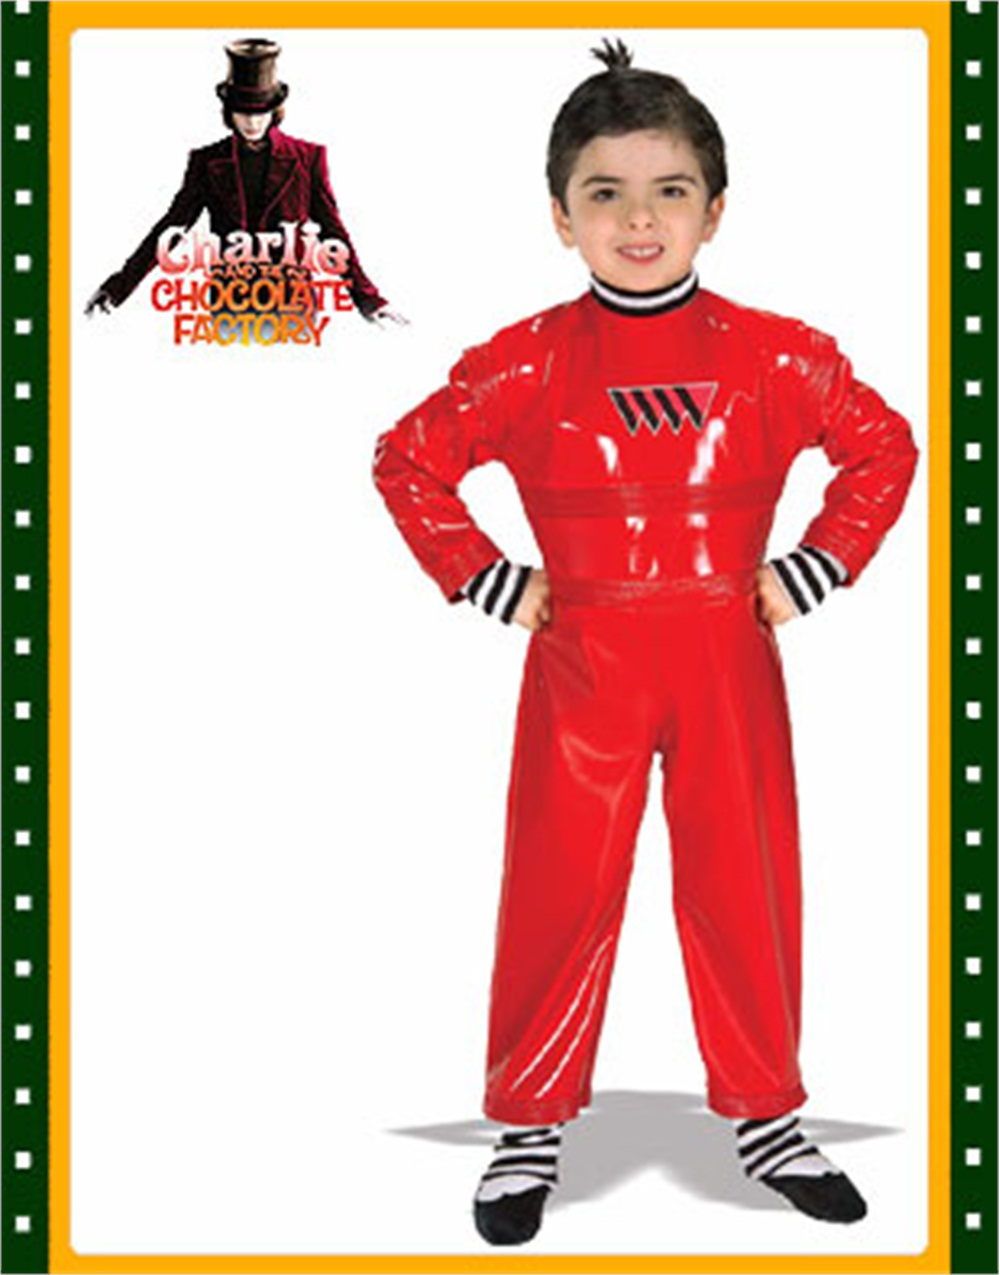 Oompa Loompa Charlie Chocolate Factory Child Costume - Walmart.com